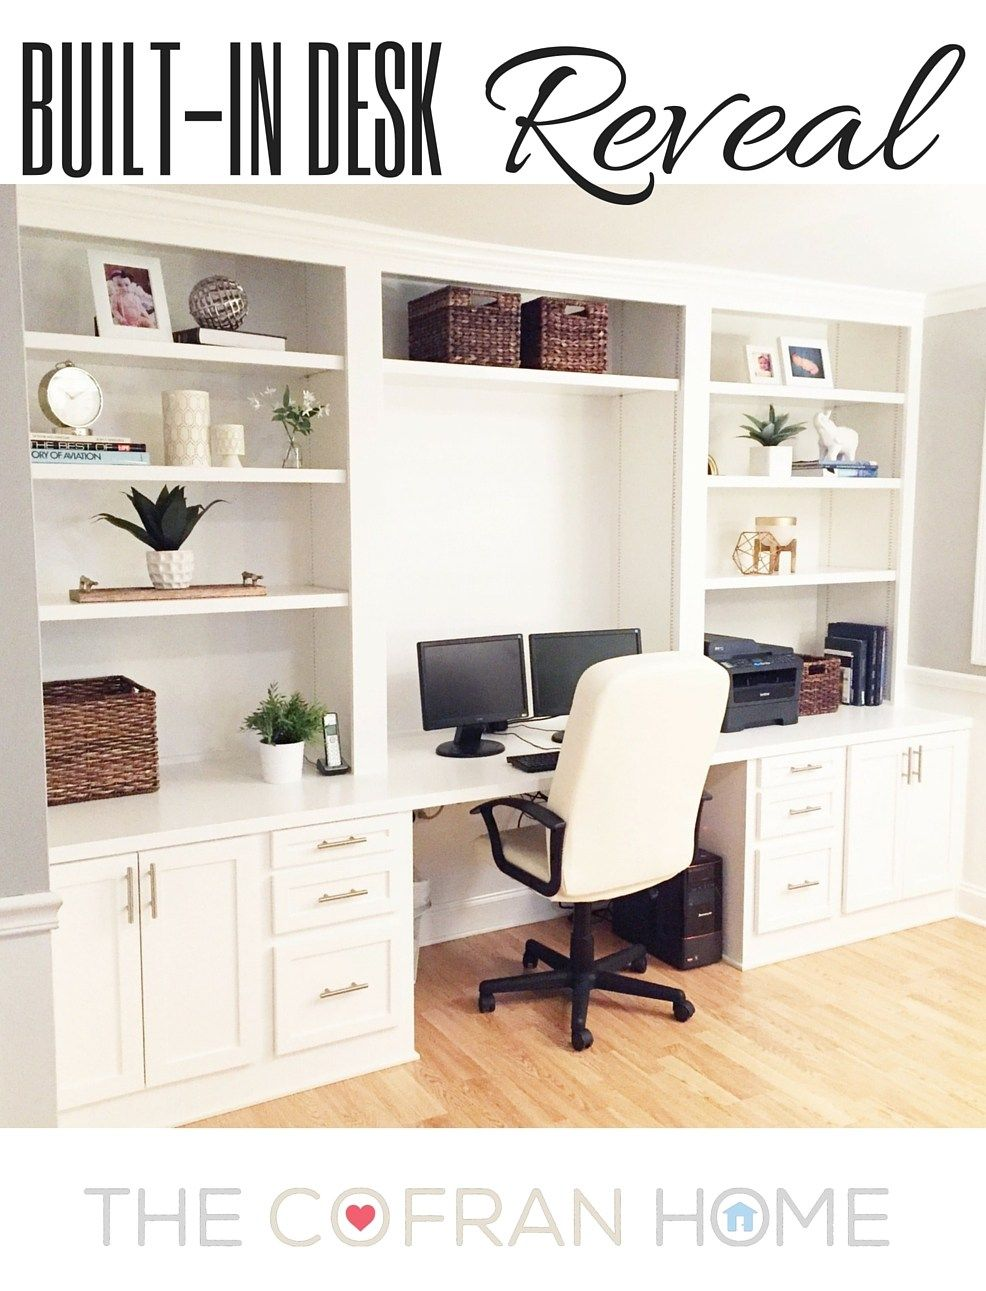 custom built desks home office. Built-In Desk Reveal Custom Built Desks Home Office